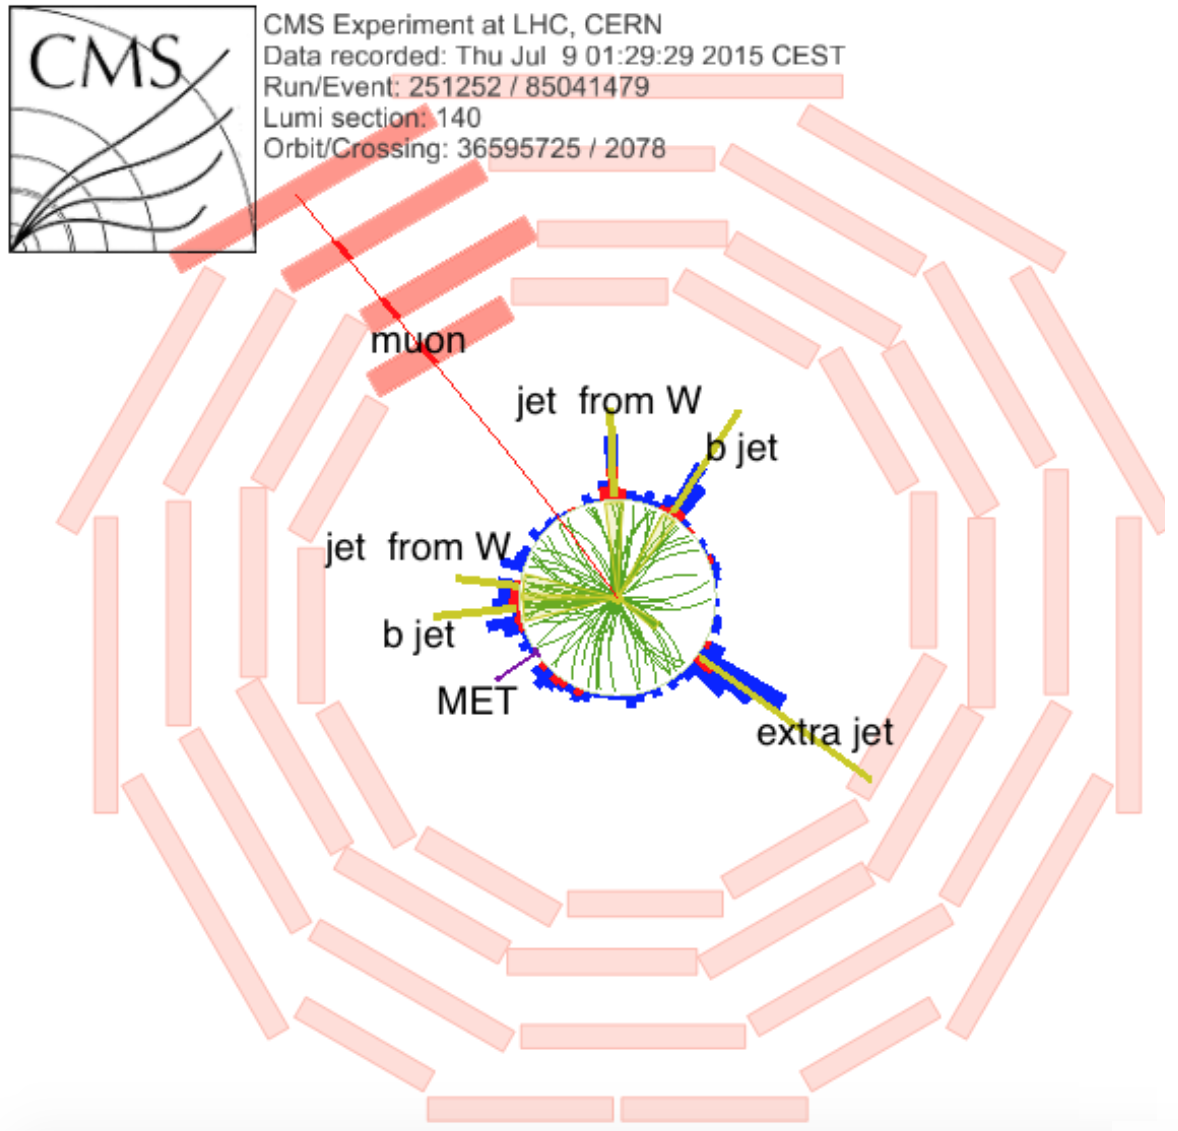 Display of a top quark-antiquark production event. Each top quark decays to a b-jet and a W boson. One of the W bosons decays to a lepton (in this case a muon) and a neutrino, which manifests itself as a missing energy in the detector (labeled MET). There are also two jets from the other W-boson decay. Just like many other collisions at the Large Hadron Collider, this event  also contains an extra additional jet.